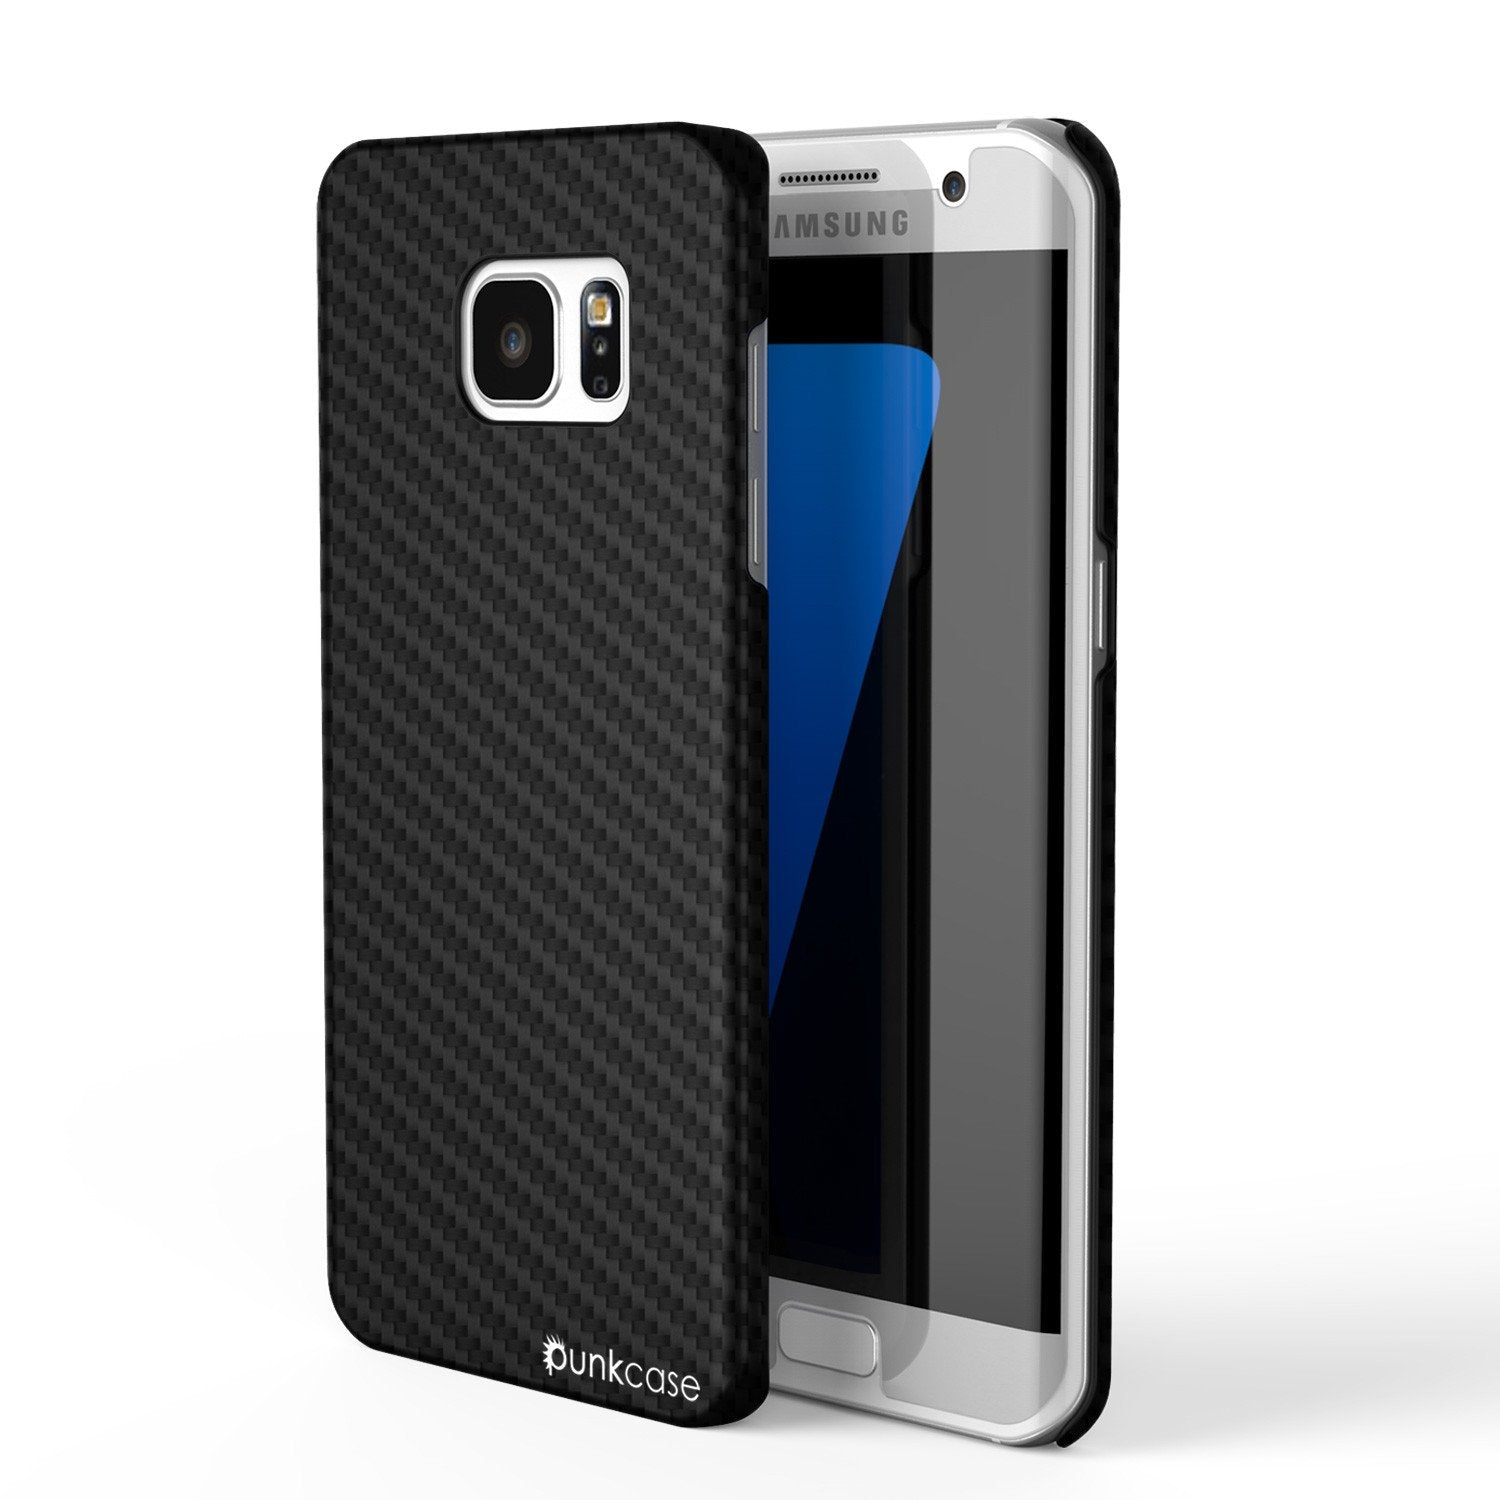 Galaxy S7 Edge Case, PunkCase CarbonShield, Jet Black